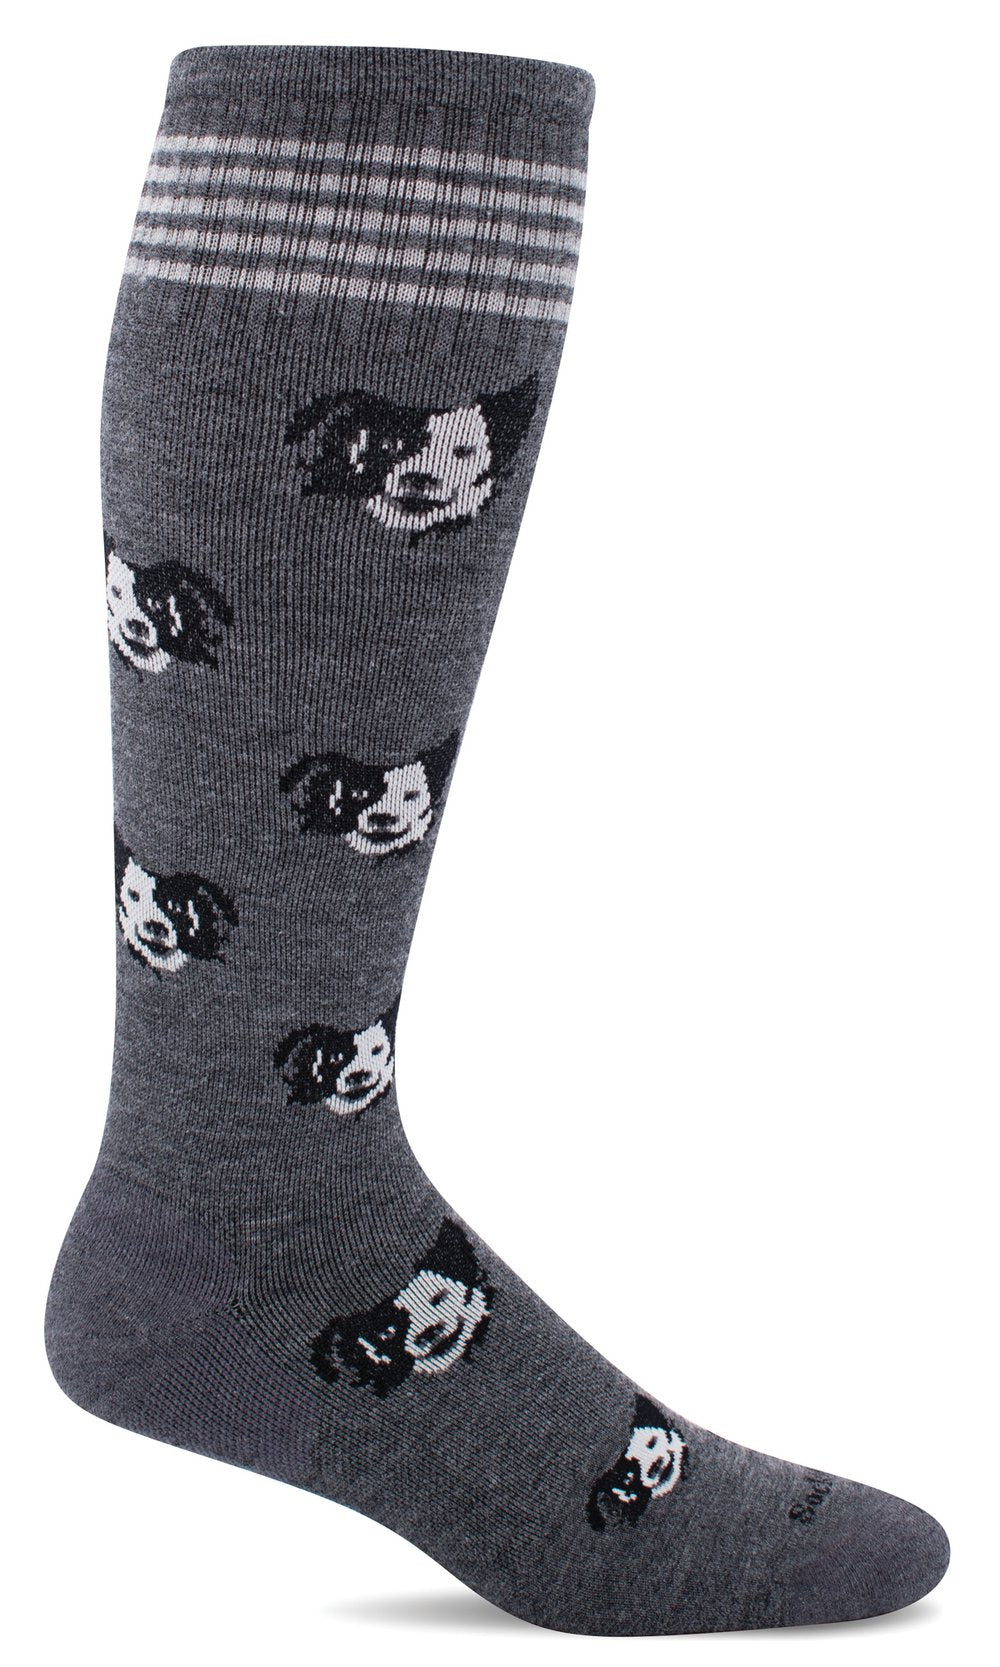 Canine Cuddle - Moderate Compression Socks